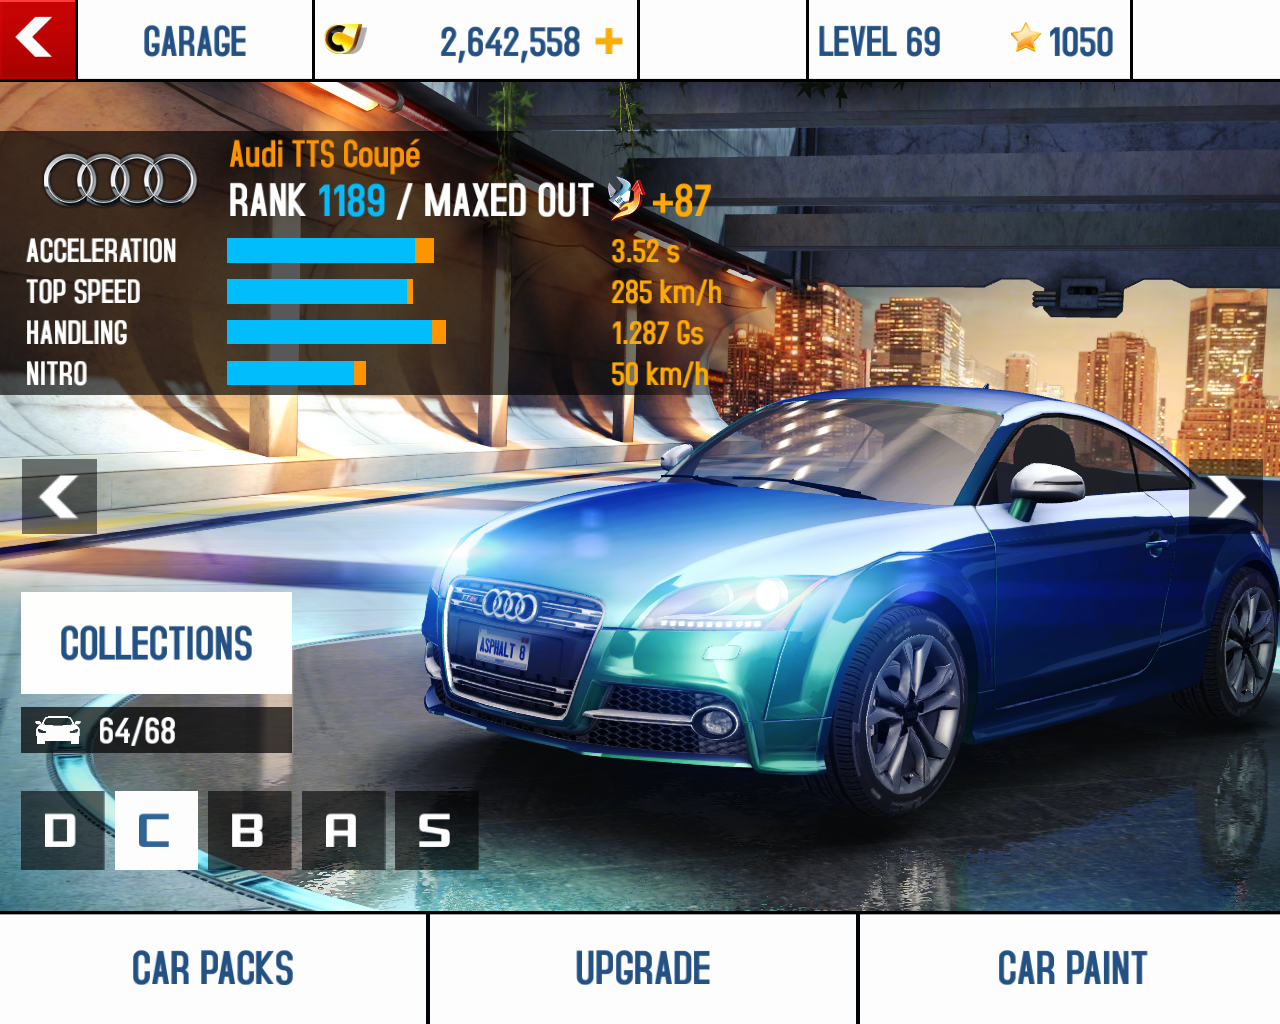 mercedes benz sls amg electric drive asphalt 8 with C Class on Collections in Asphalt 8 furthermore Ferrari 458 Italia  MegaPost moreover List Of All Cars Of Asphalt 8 Airborne additionally All Cars List moreover Watch.